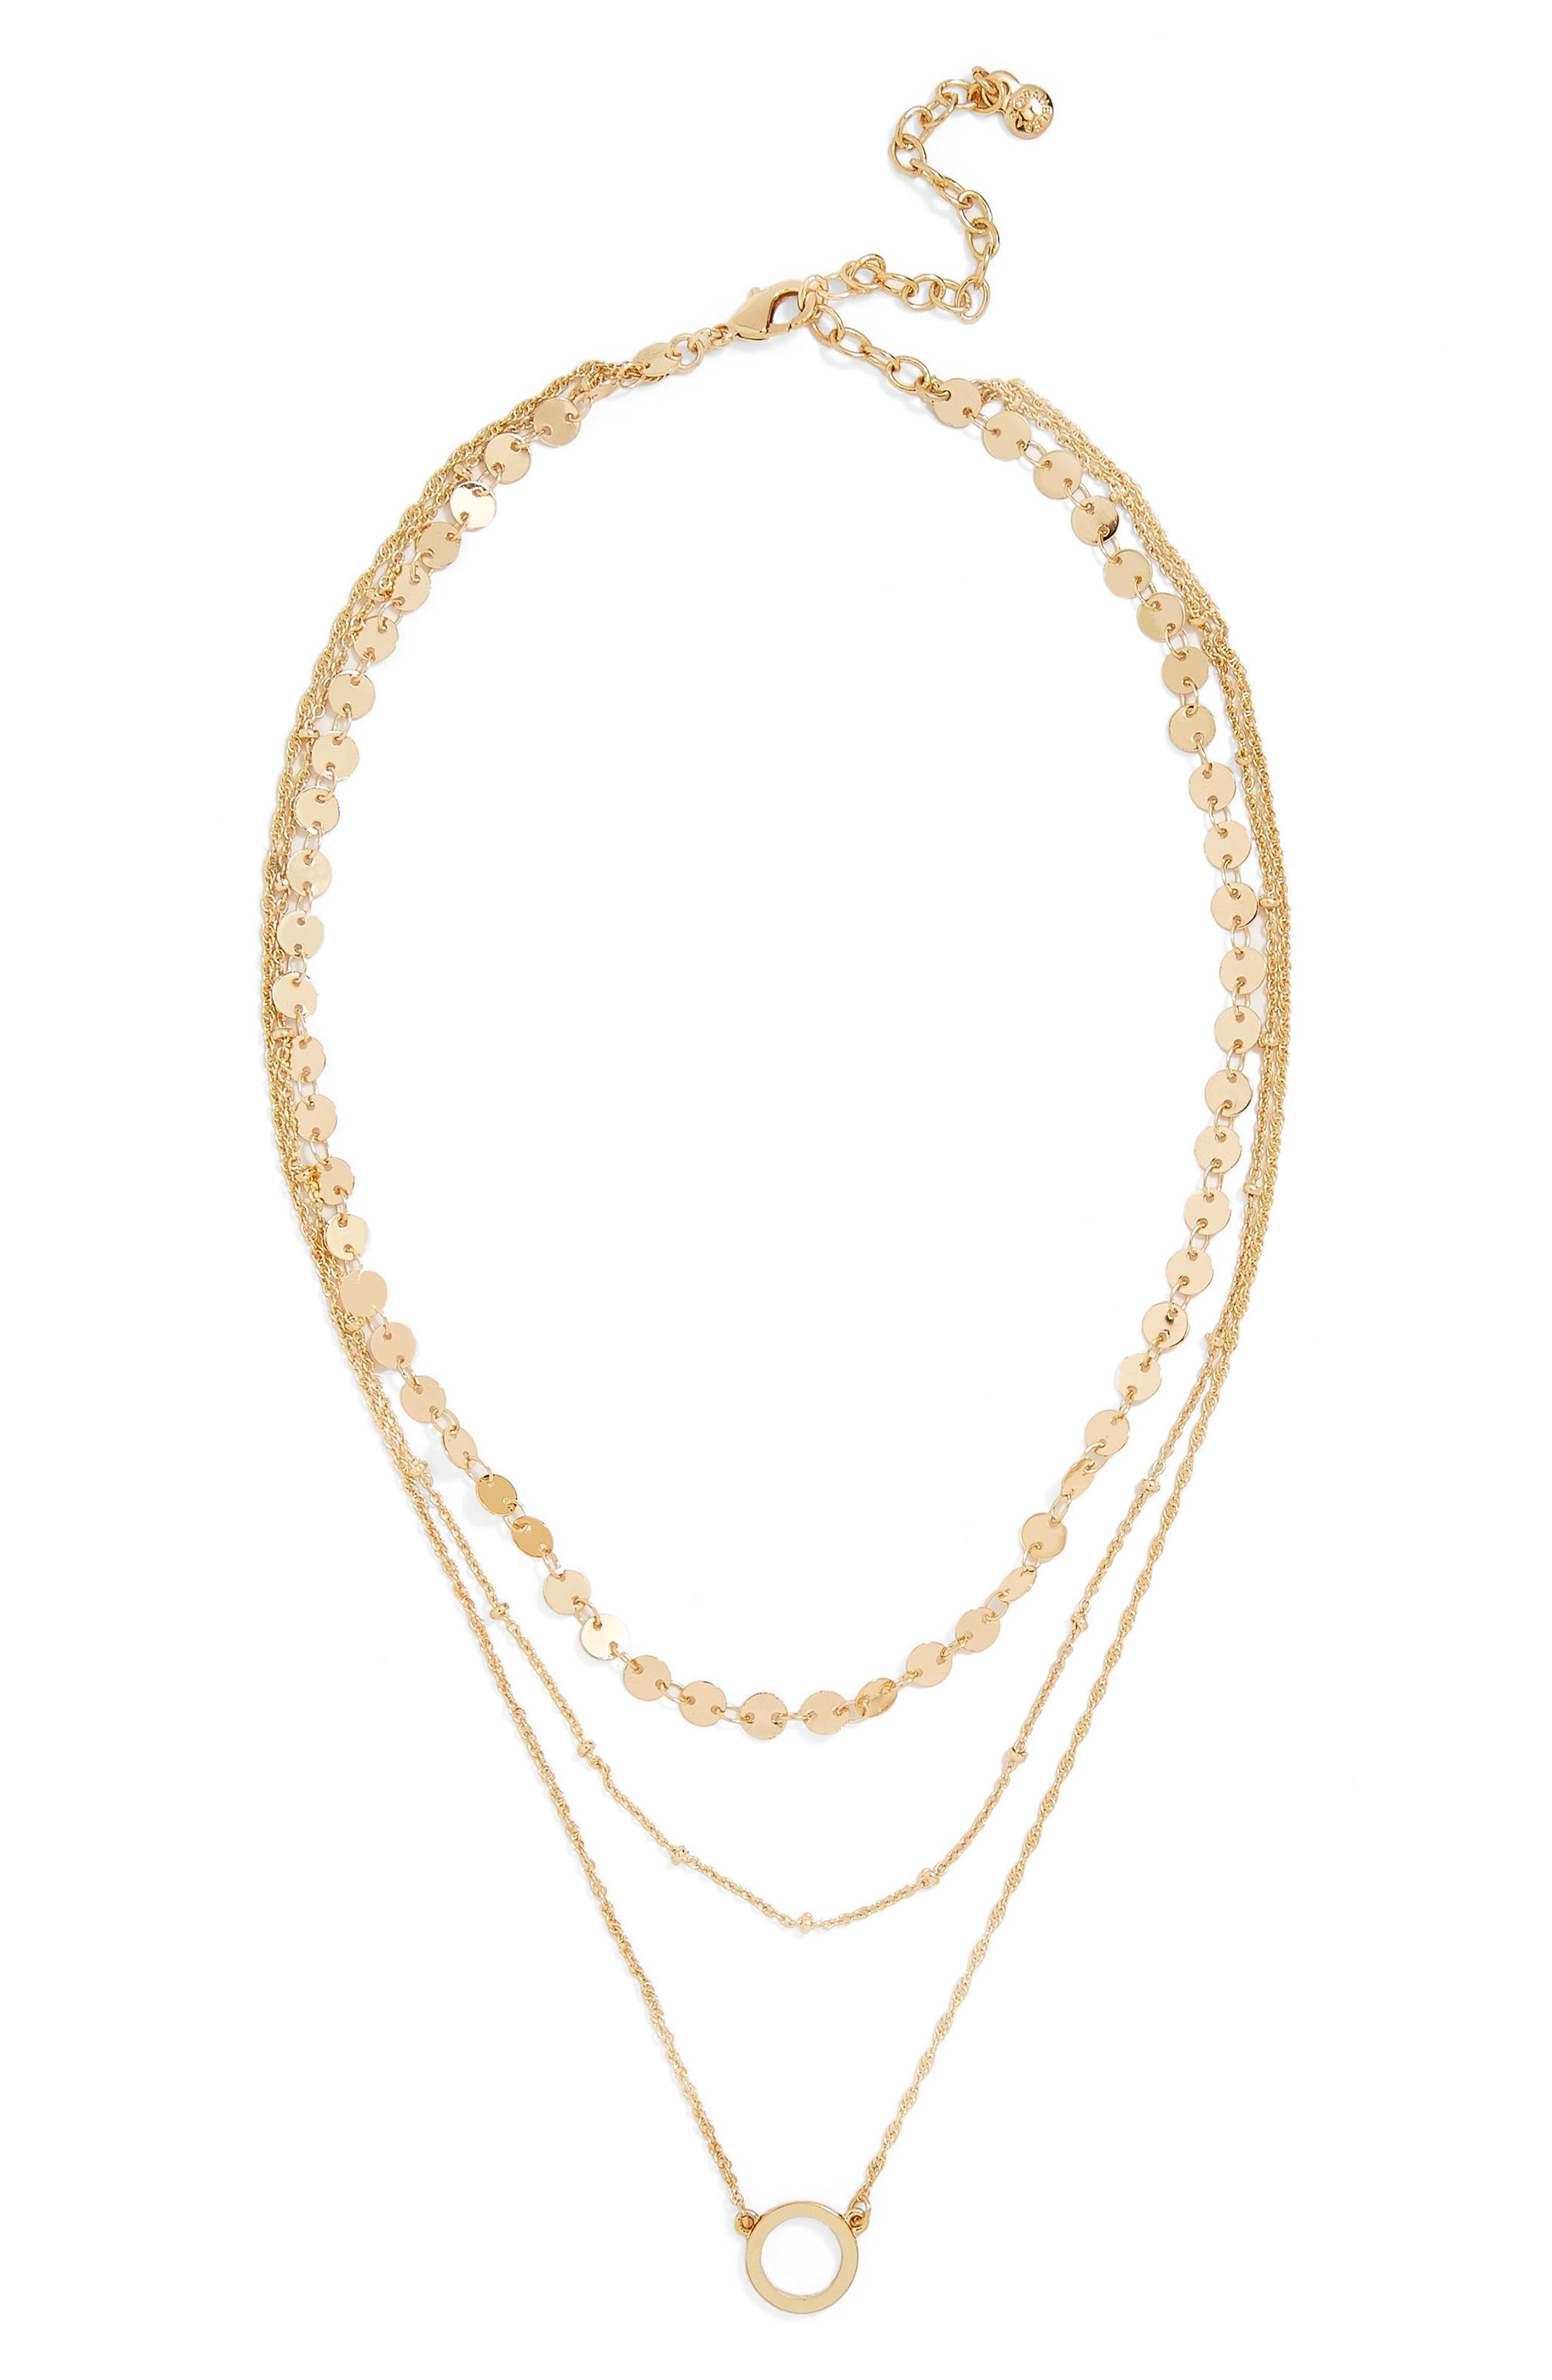 BAUBLEBAR Adrielle Triple Strand Necklace, Main, color, GOLD